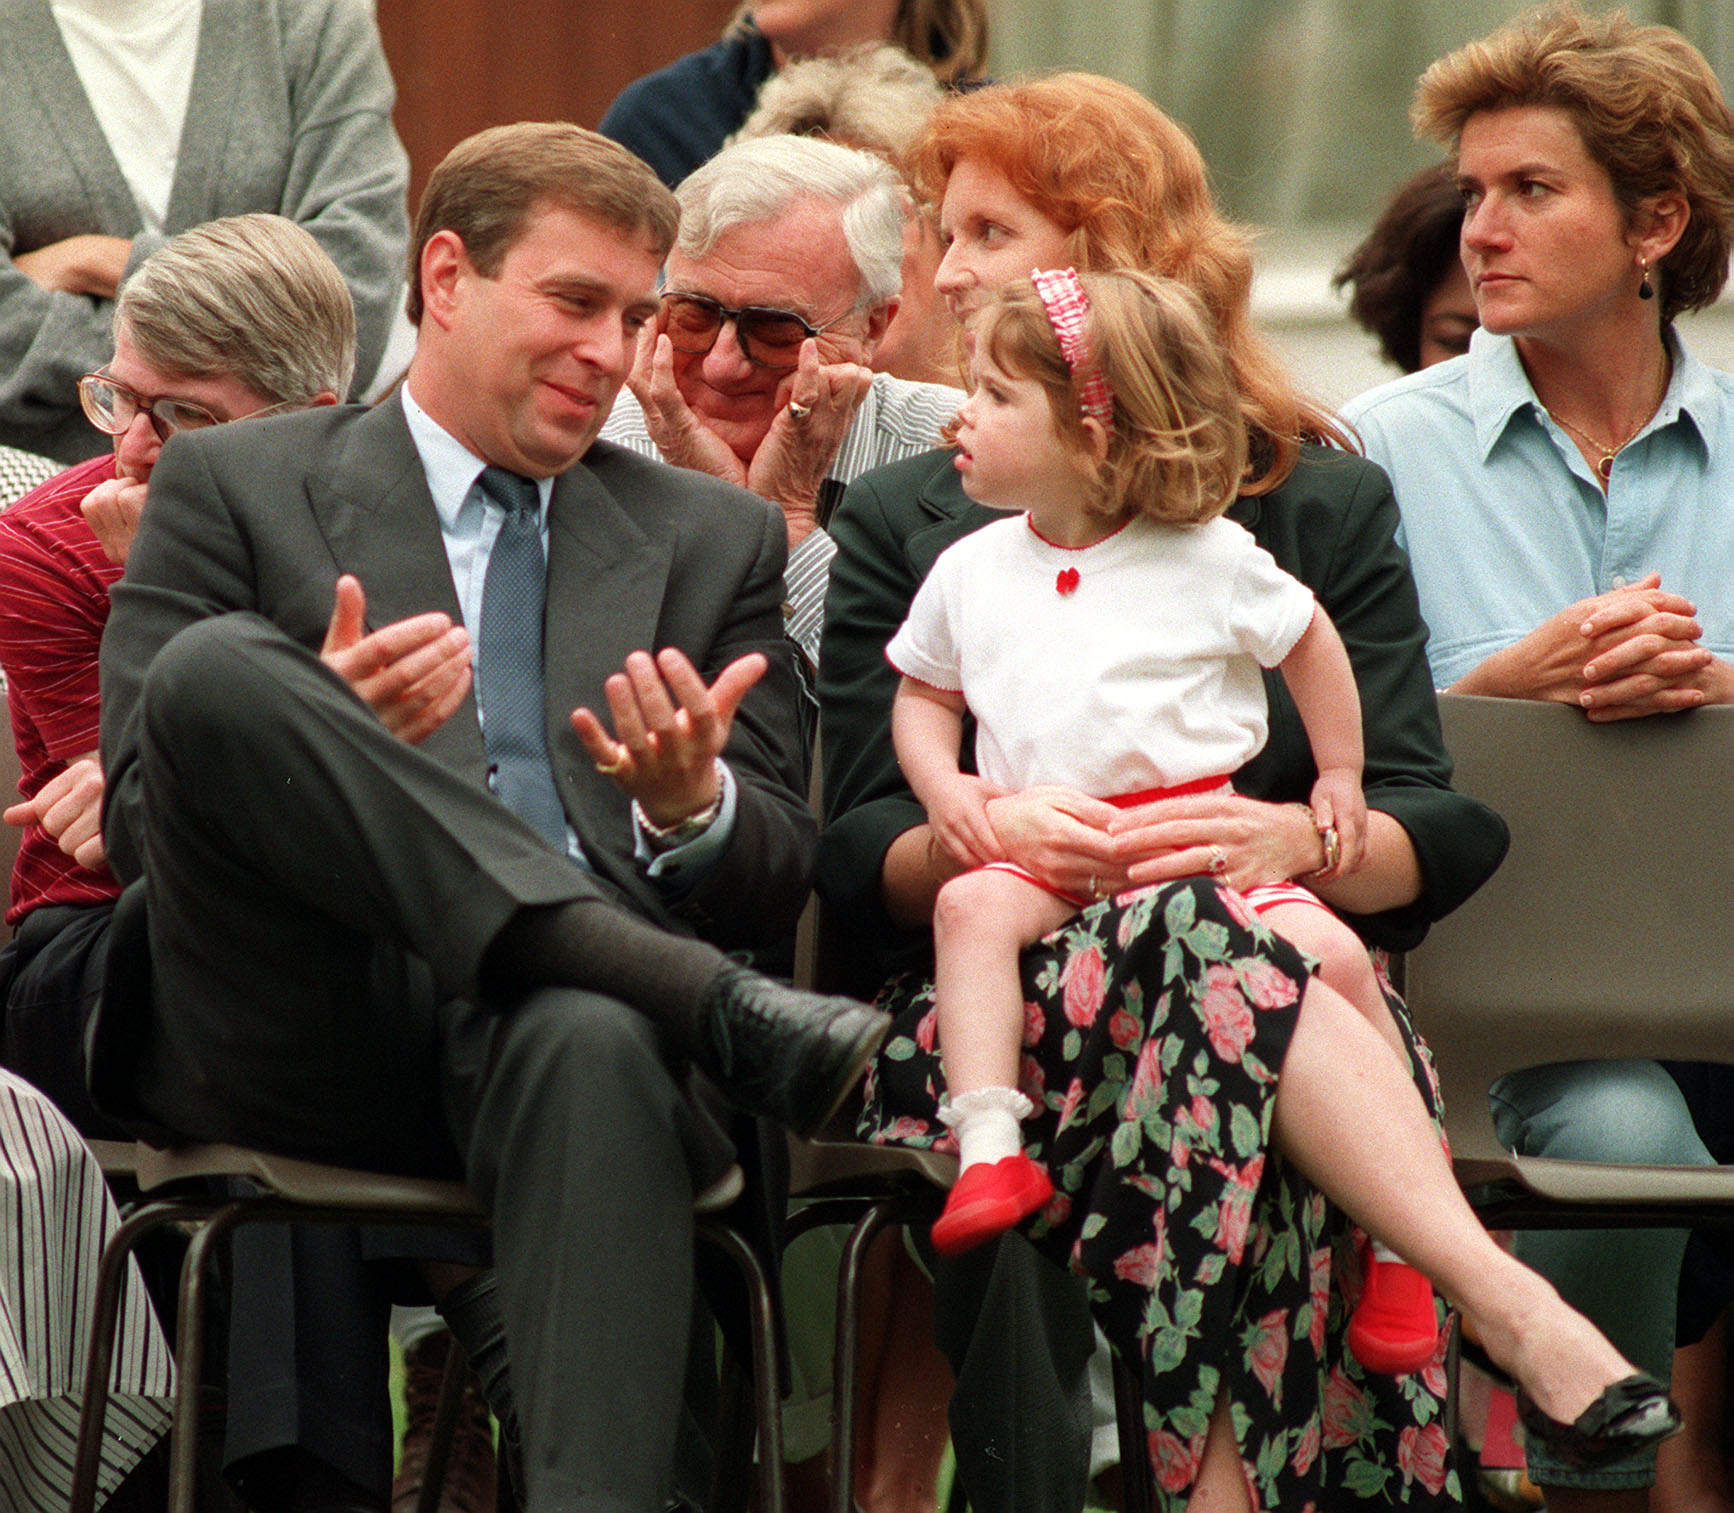 The Duke and Duchess of York attend the school sports day with Princess Eugenie